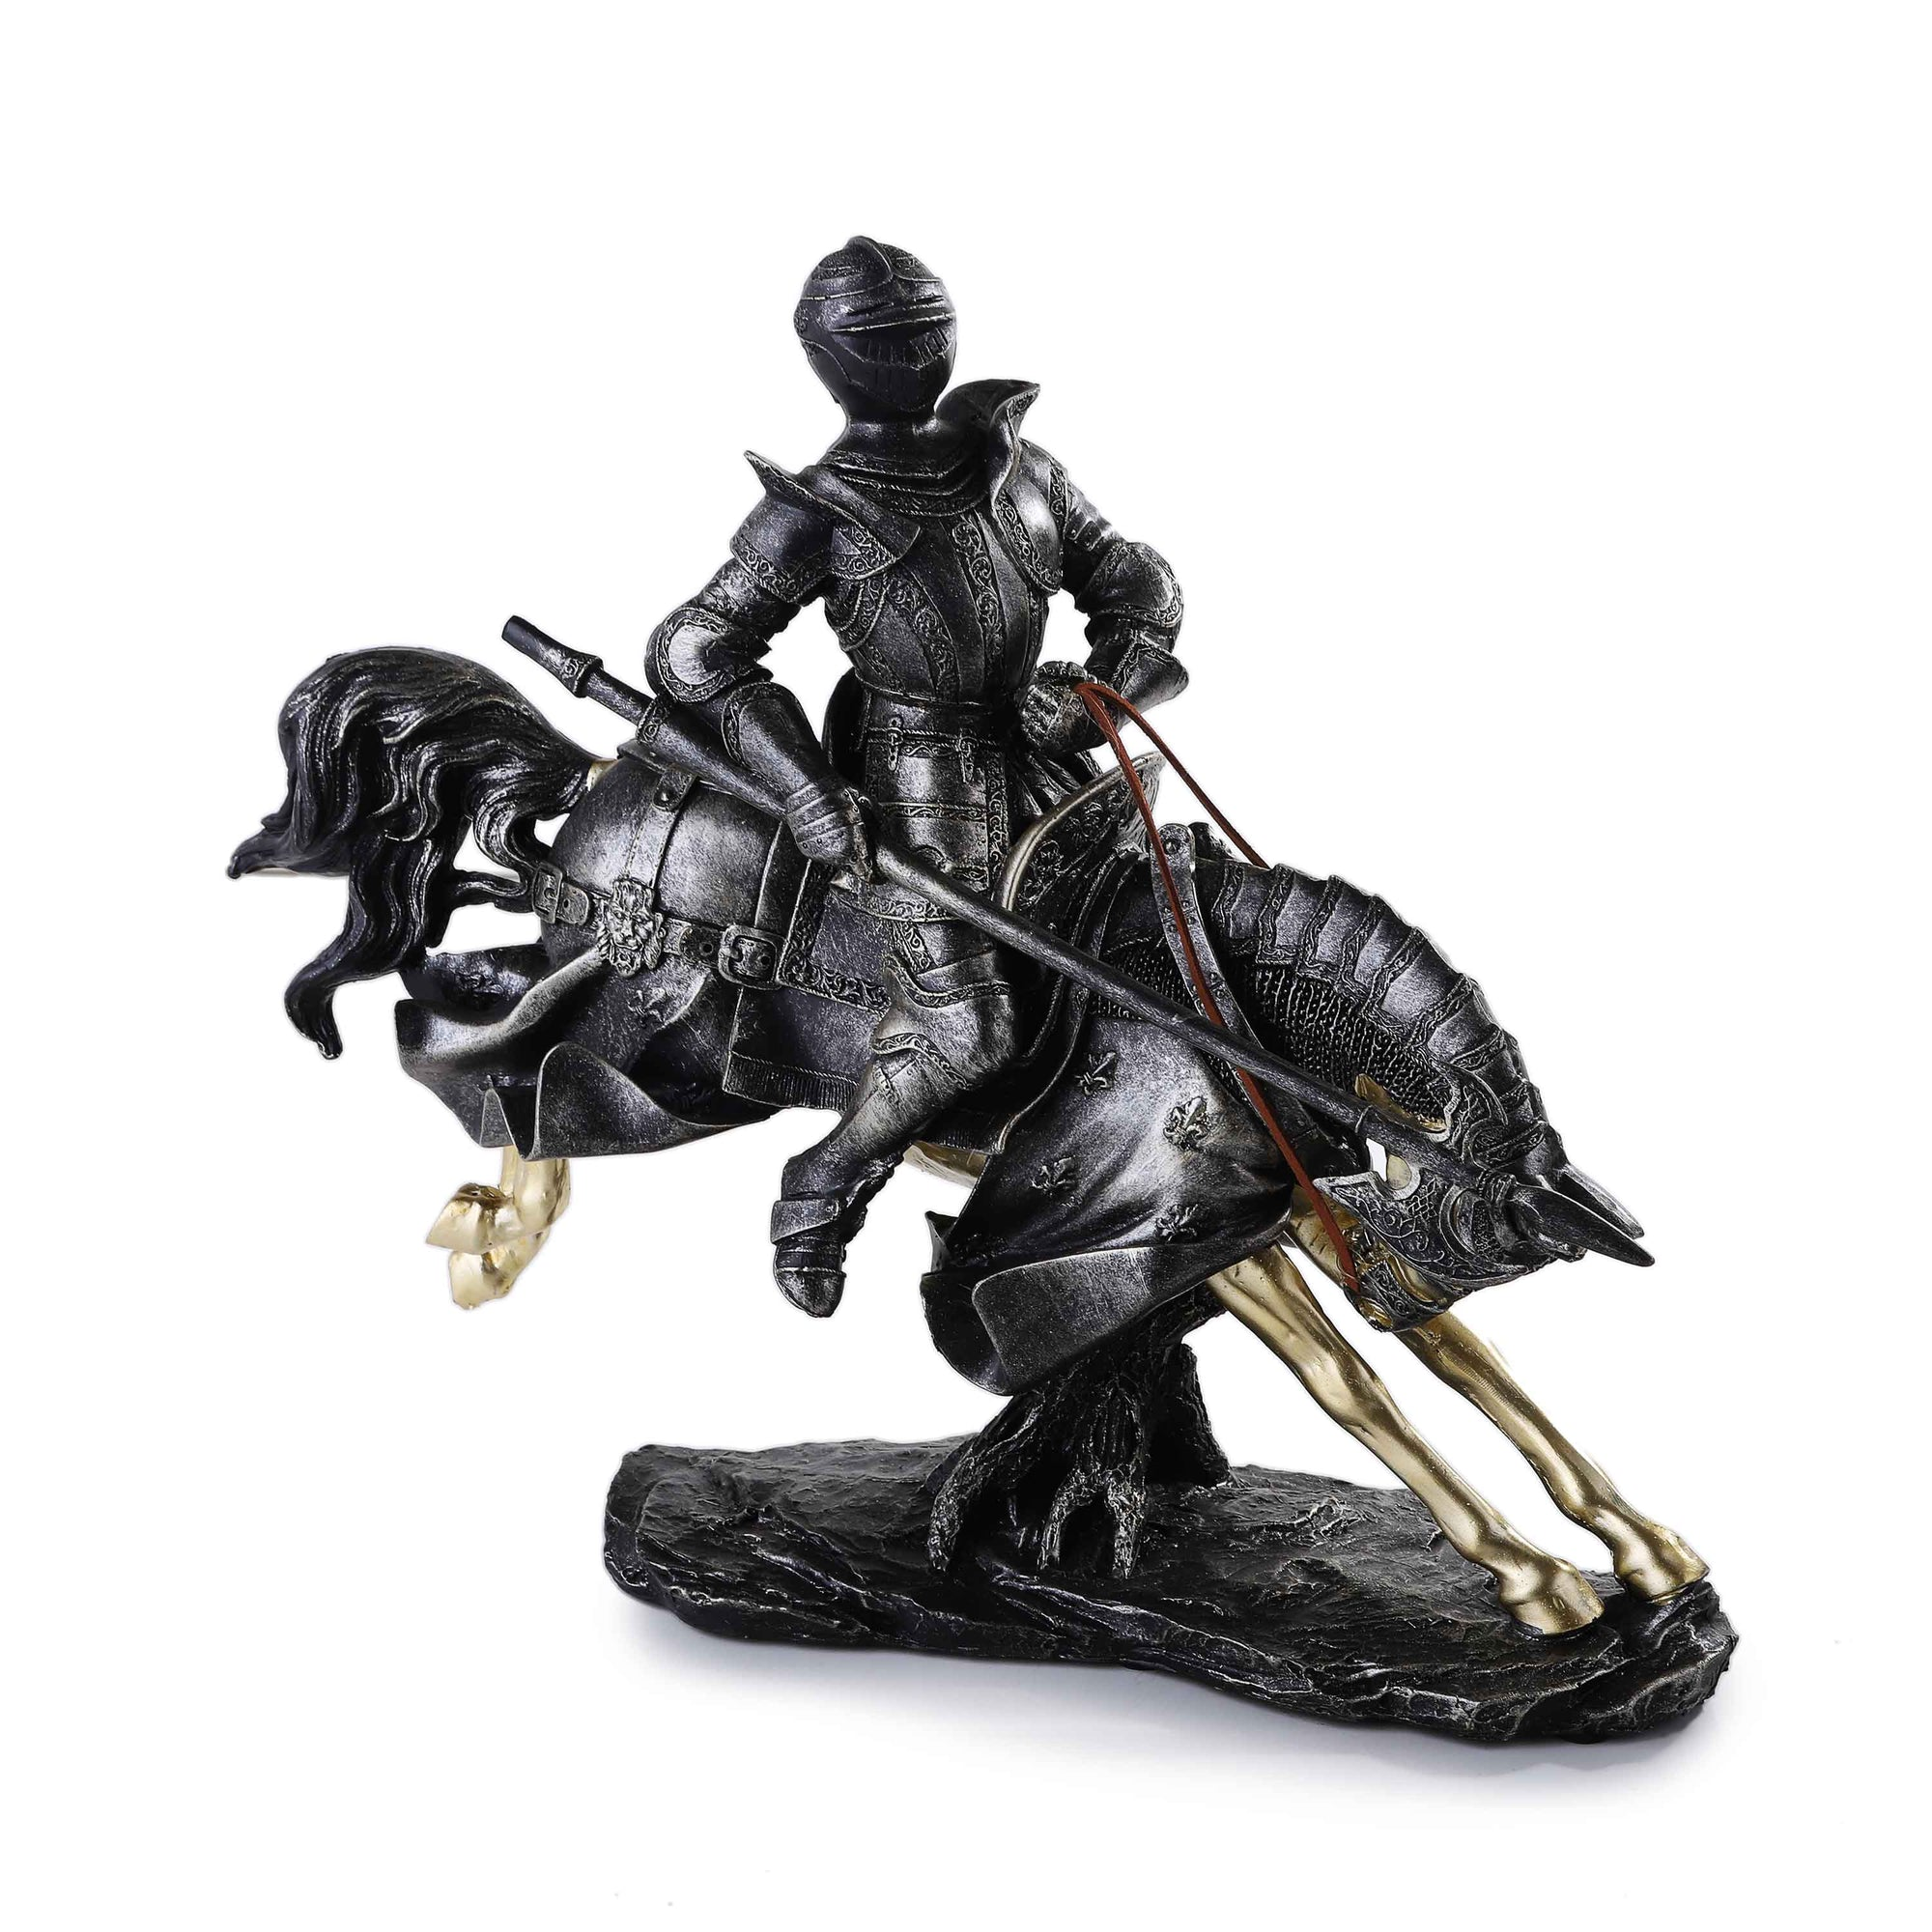 Vintage European Knight on Horse Statue